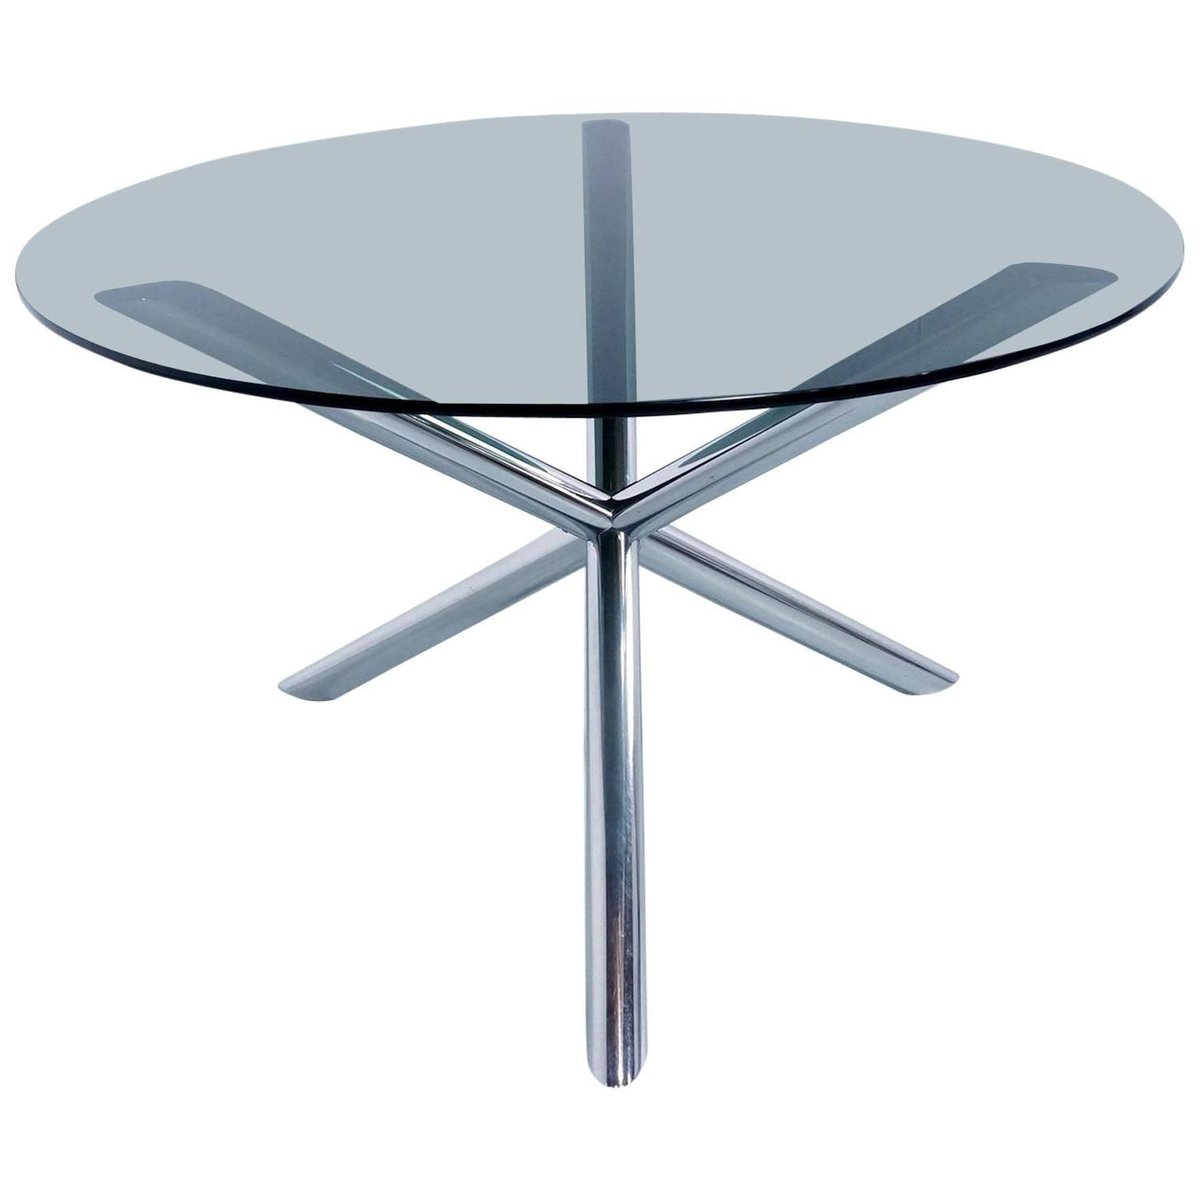 Dining Table in Chrome and Smoked Glass by Roche Bobois 1970s for